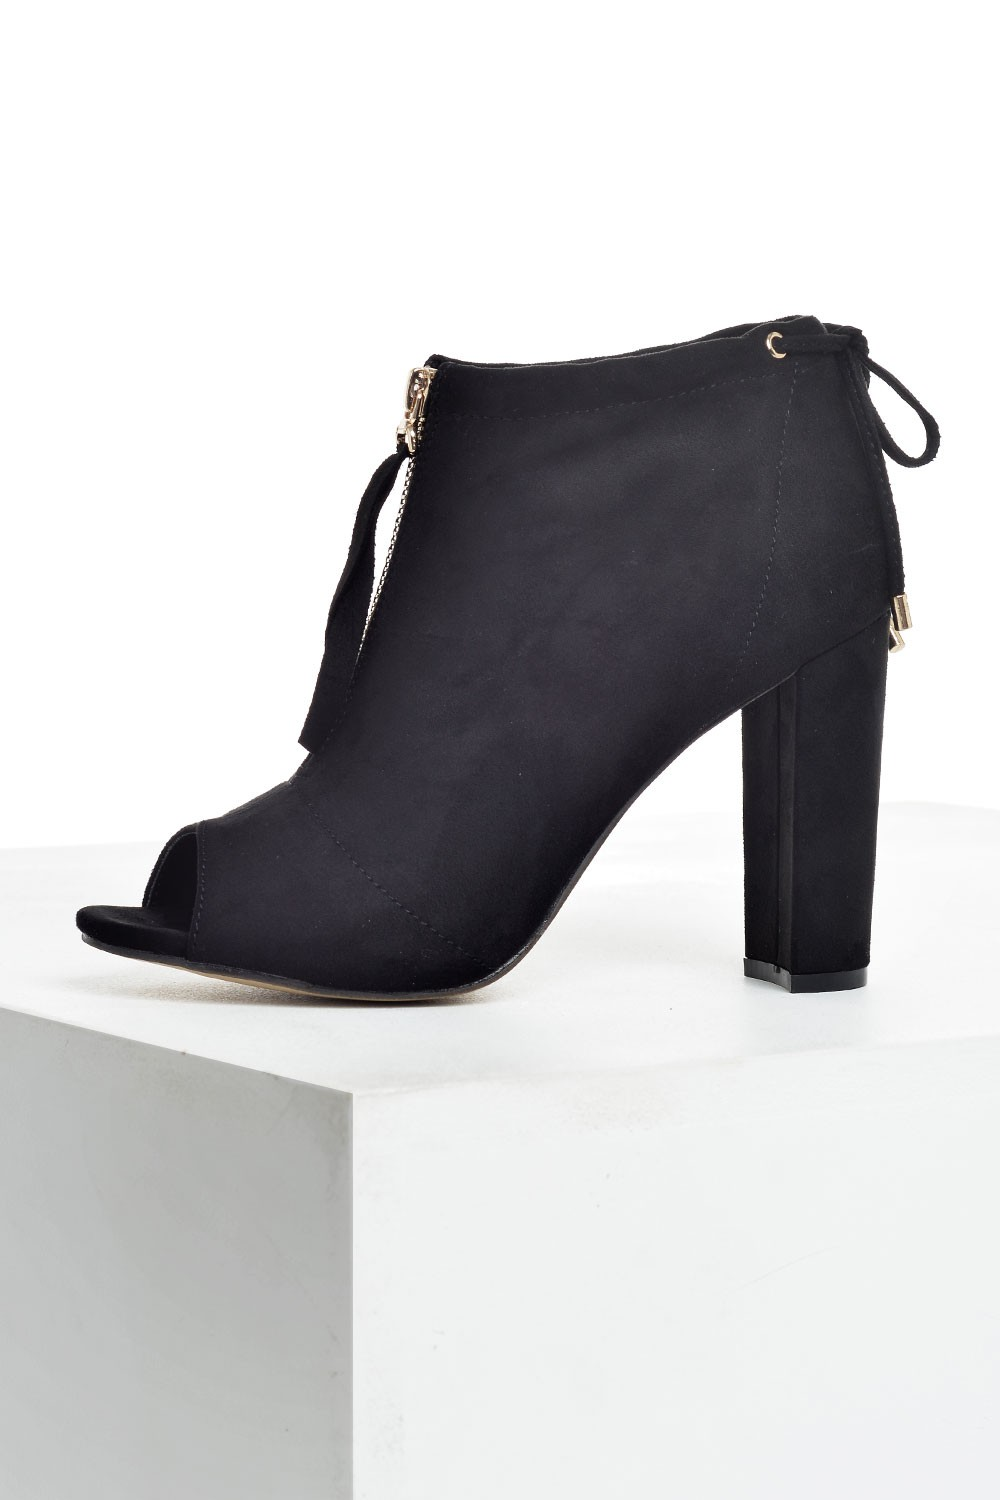 sole city tatem open toe ankle boots in black suede